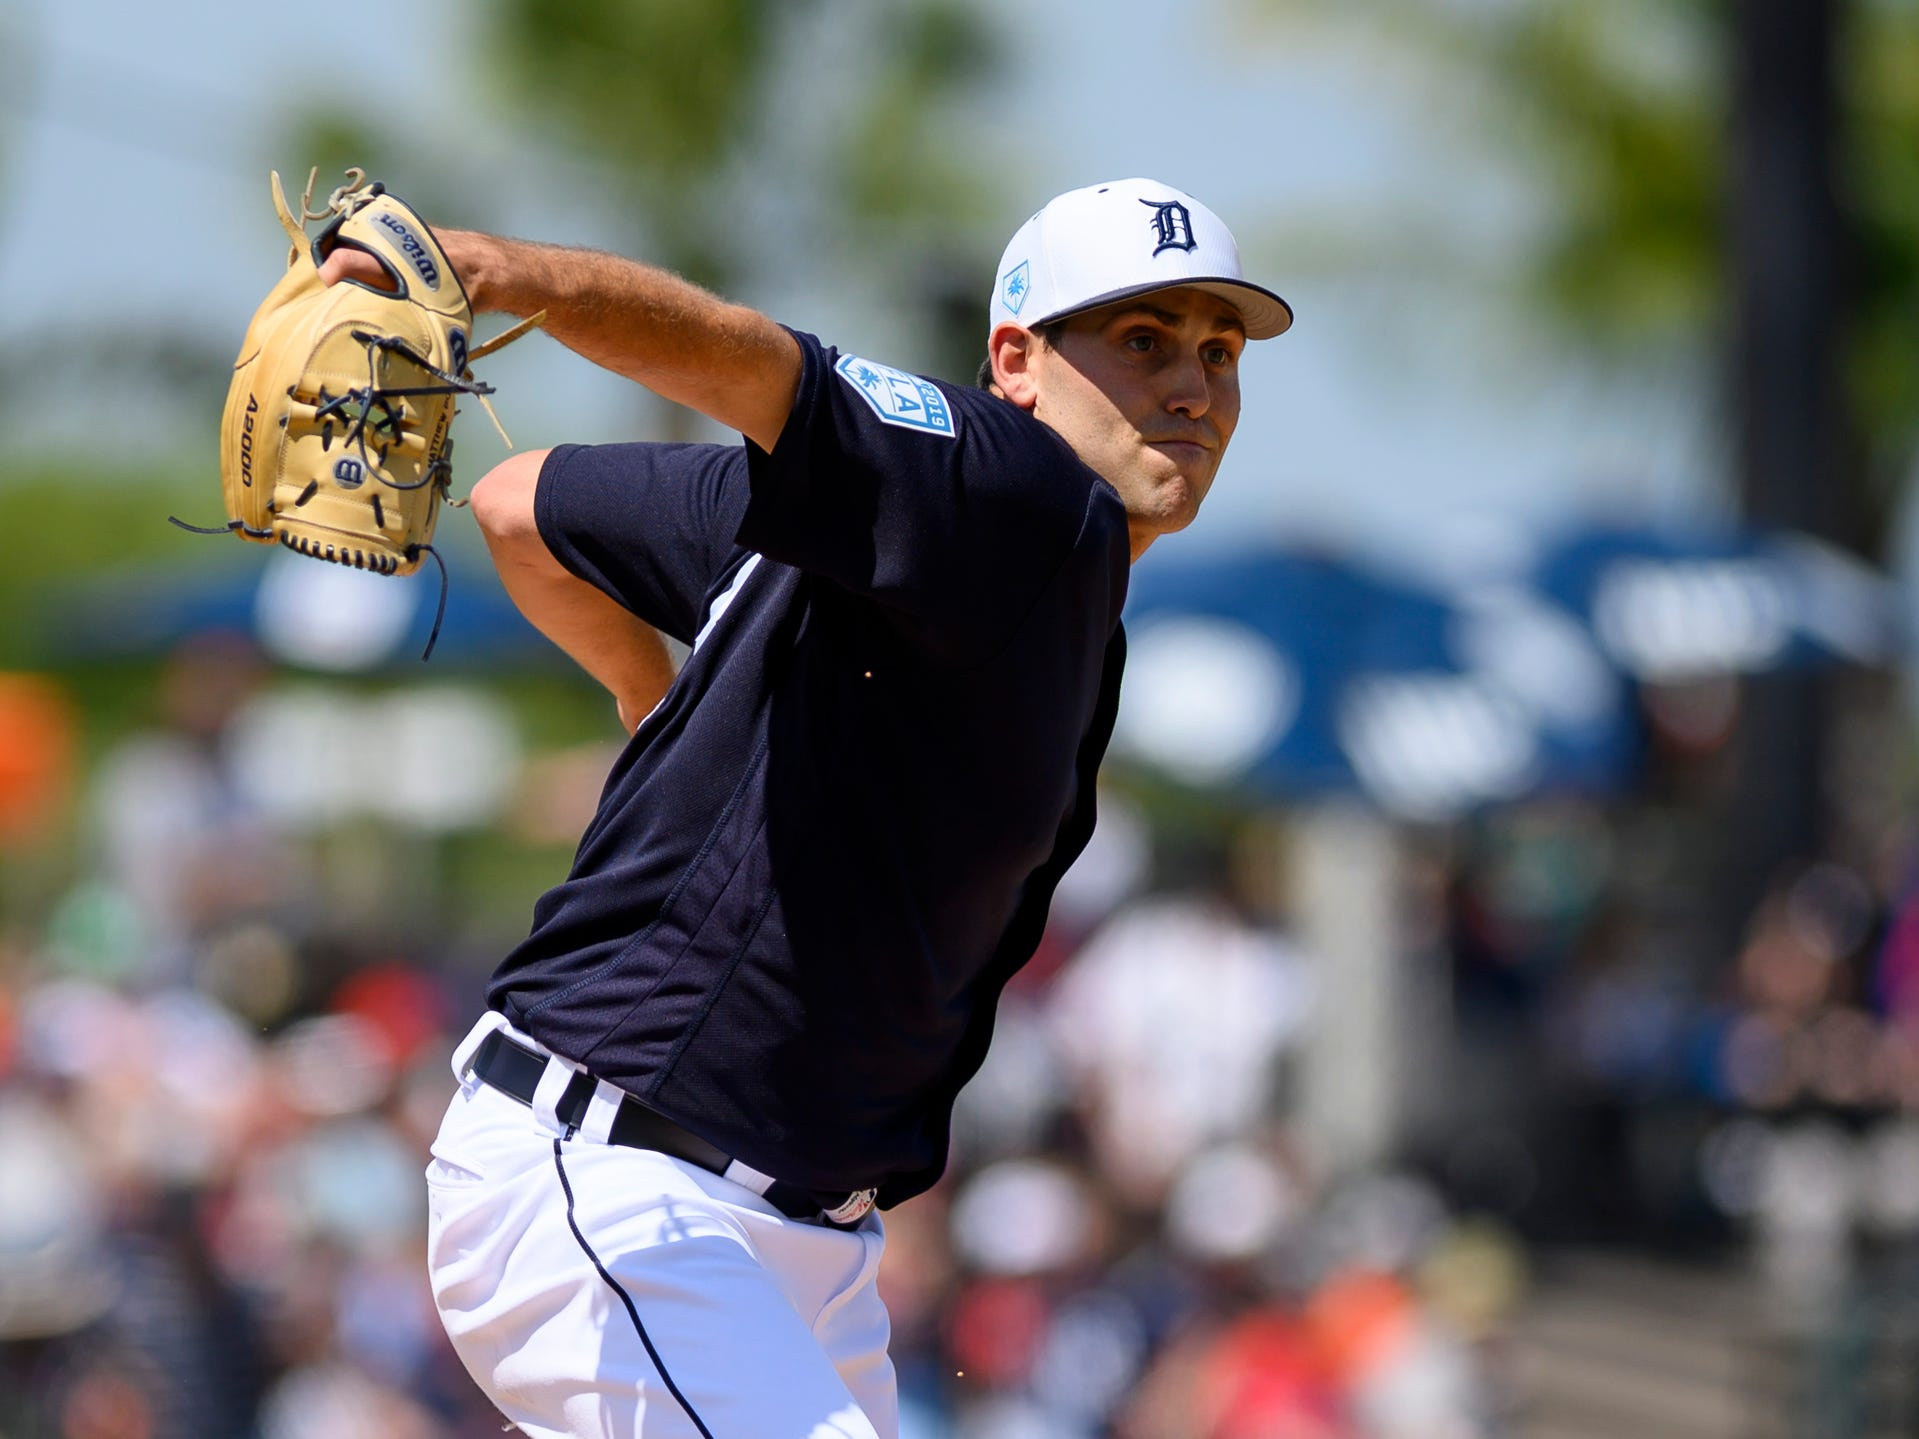 Detroit Tigers pitcher Matthew Boyd throws to first base during the fifth inning against the Boston Red Sox at Joker Marchant Stadium in Lakeland, Fla. on March 14, 2019.